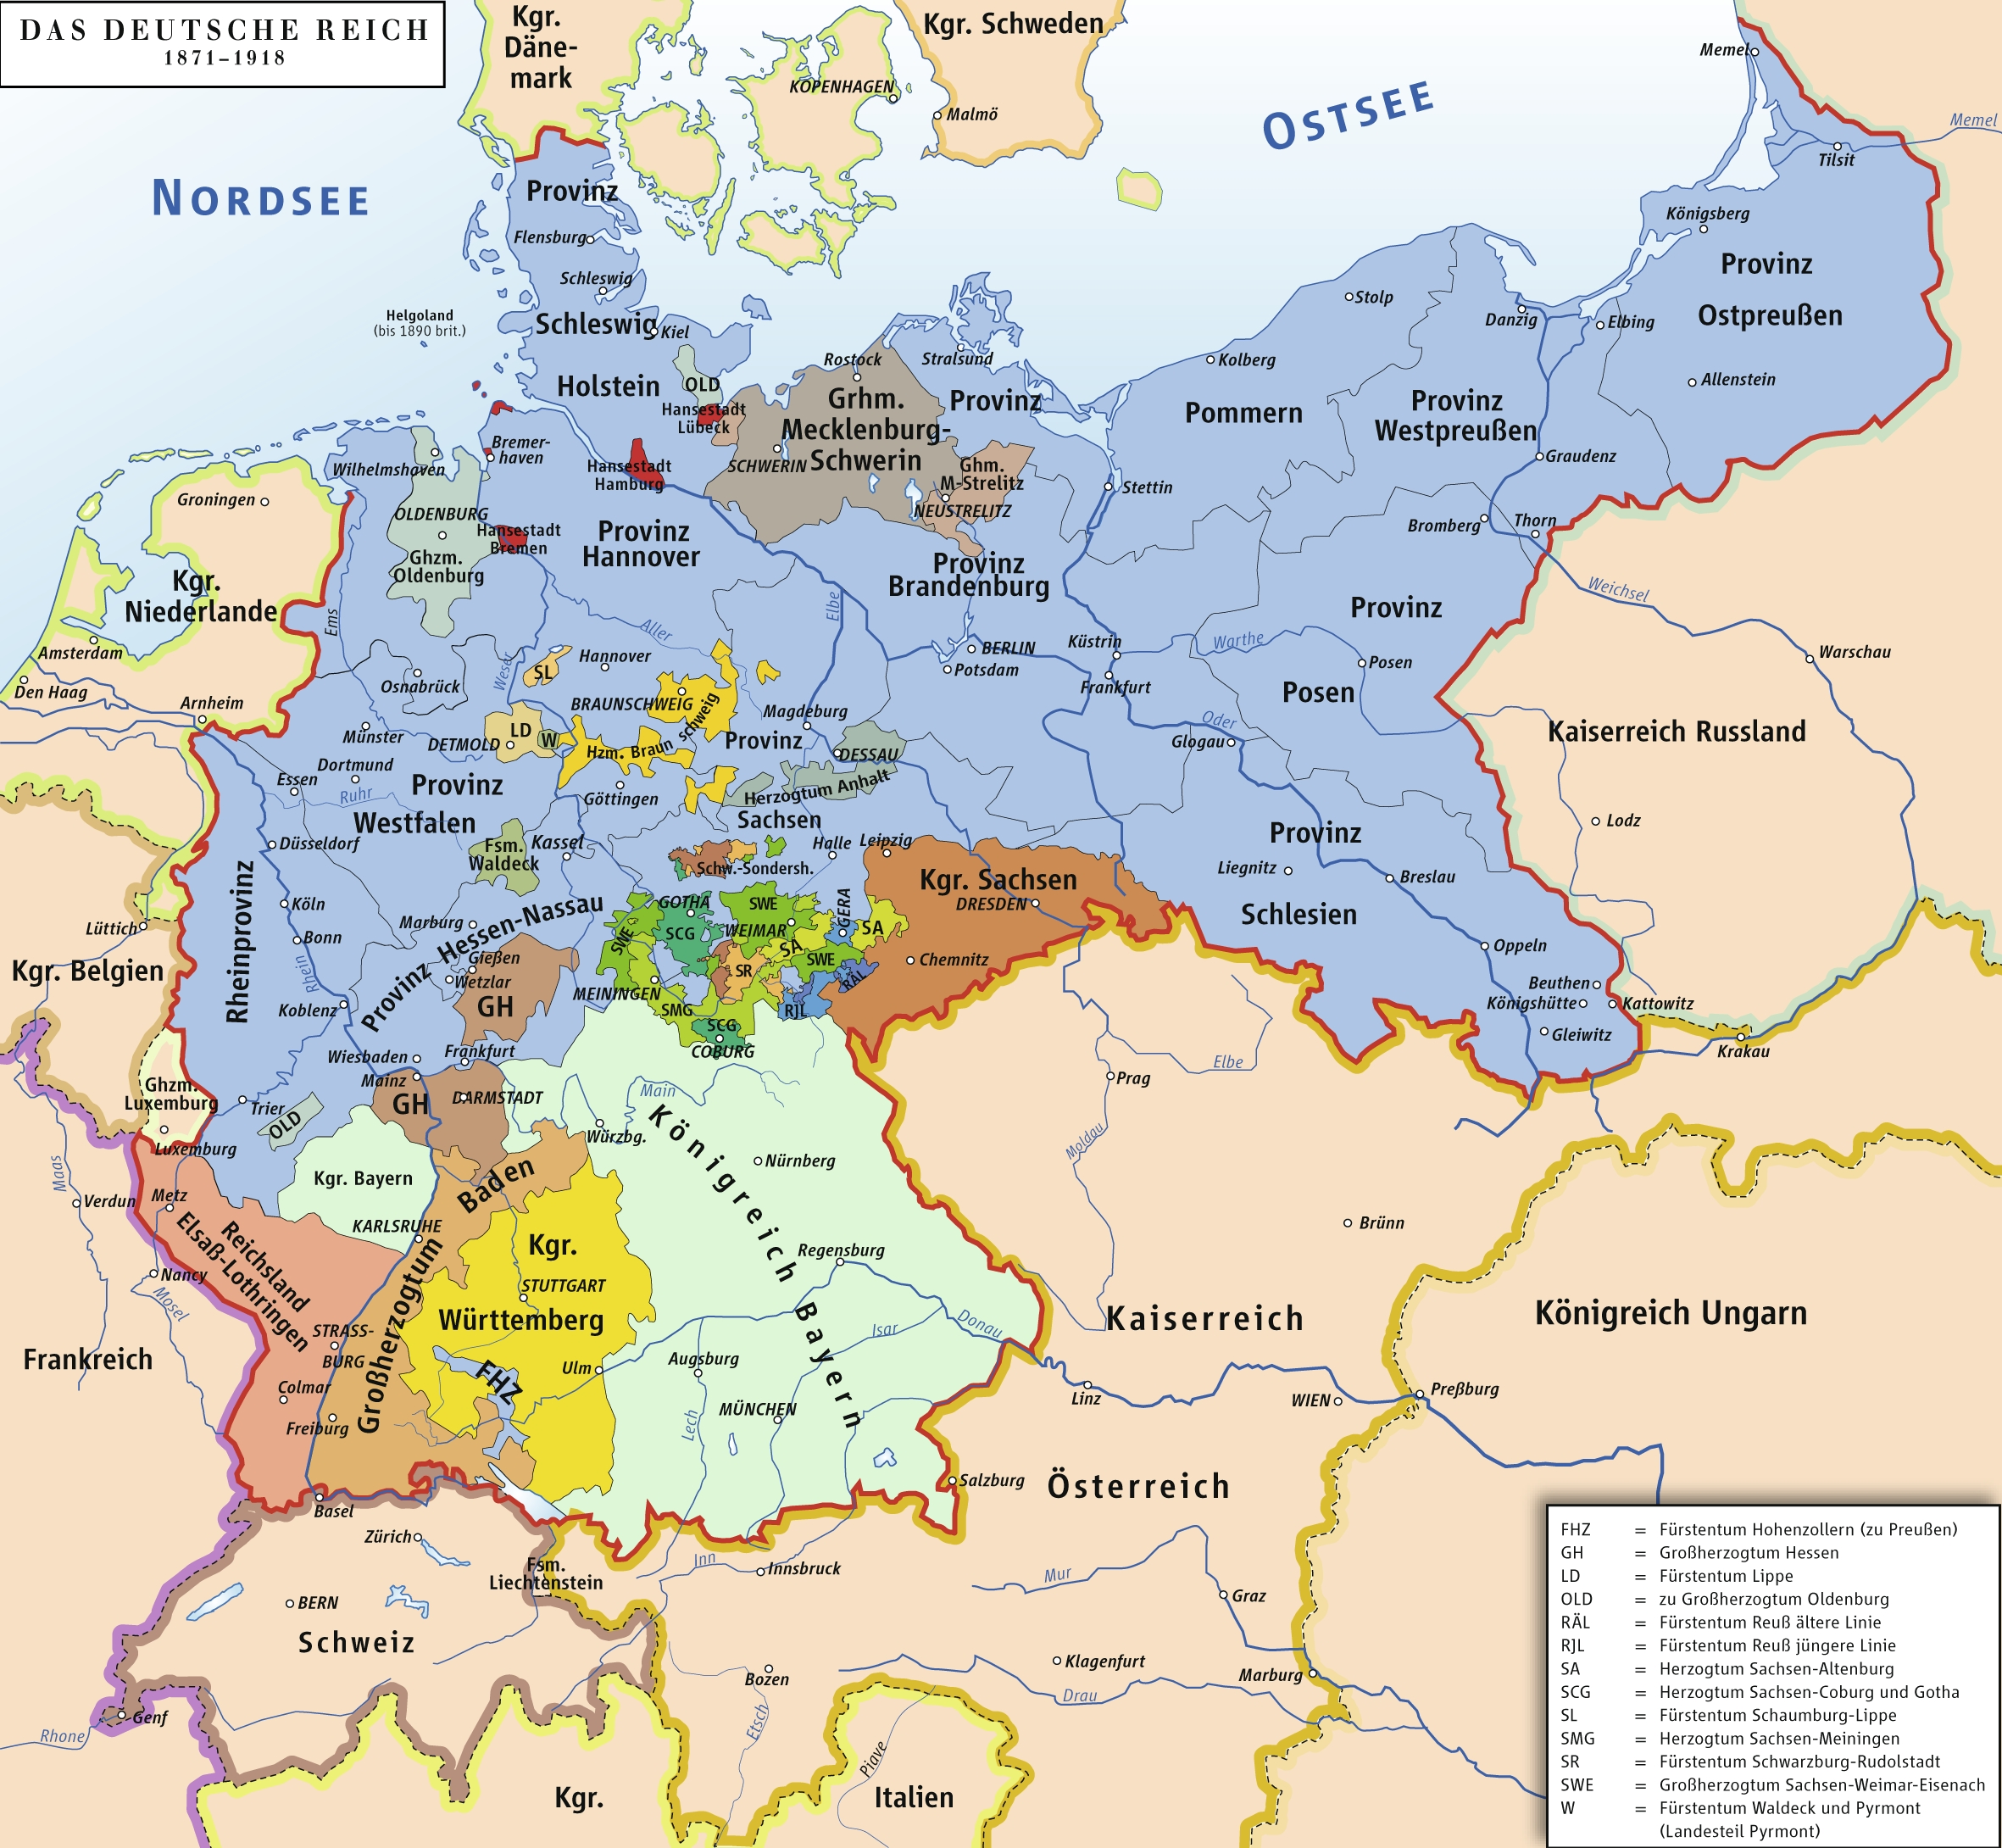 States Of The German Empire Map 1871-1918 - Vgs German Sig throughout Eisenach Germany Map